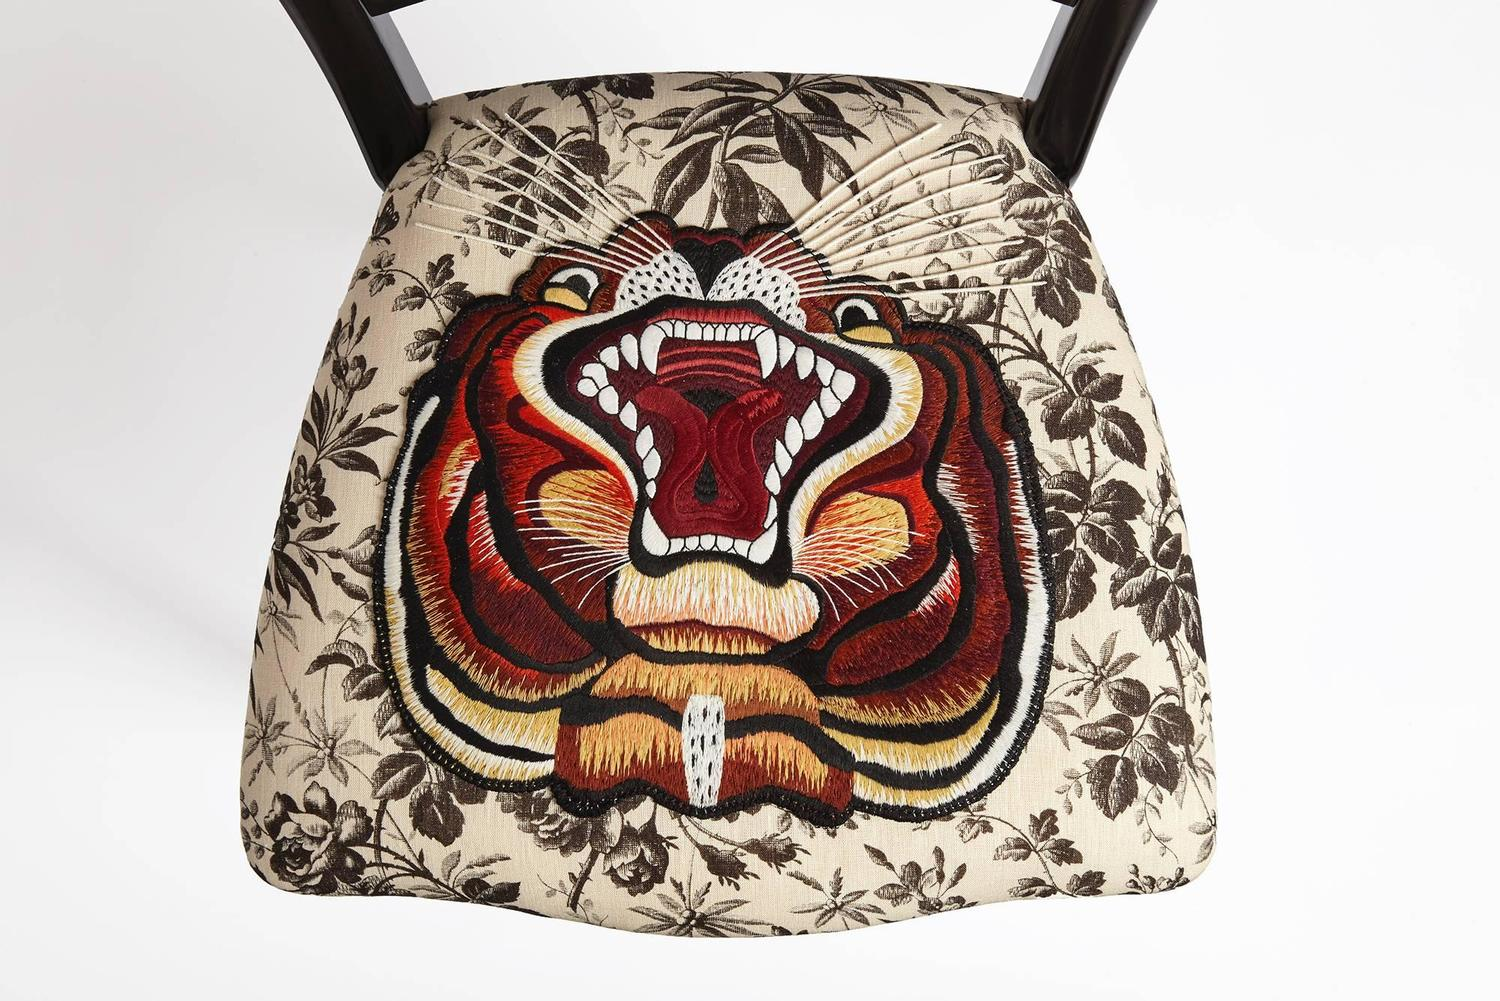 Unique Chair By Gucci Hand Embroidered Tiger On Black